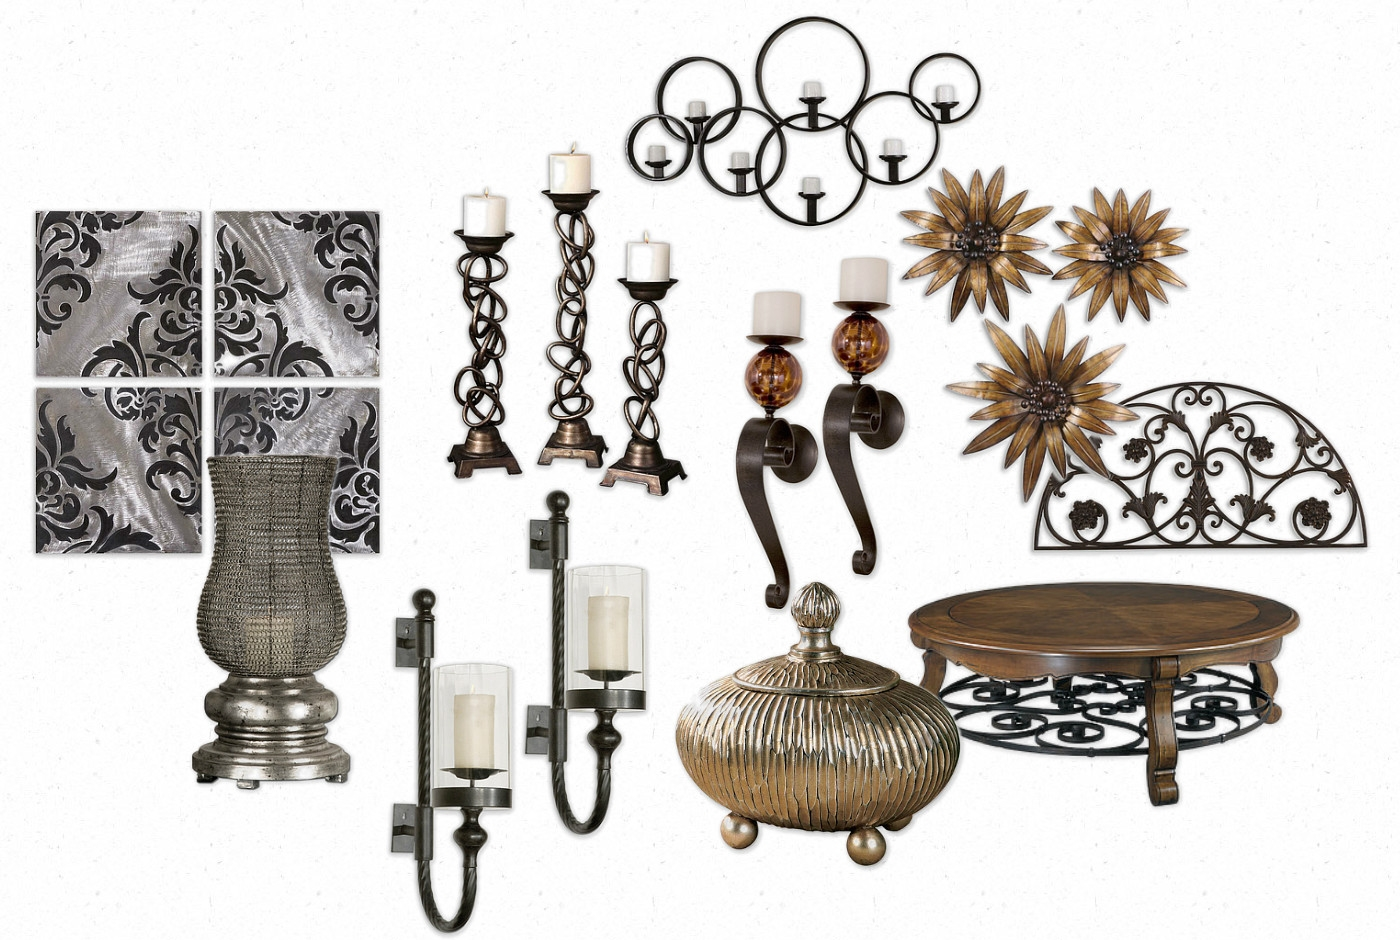 Metalwork And Iron Furniture Has Made An Interesting Journey Through The  Years. Wrought Iron Furniture Often Reminds Me Of Victorian Elegance That  Brings An ...